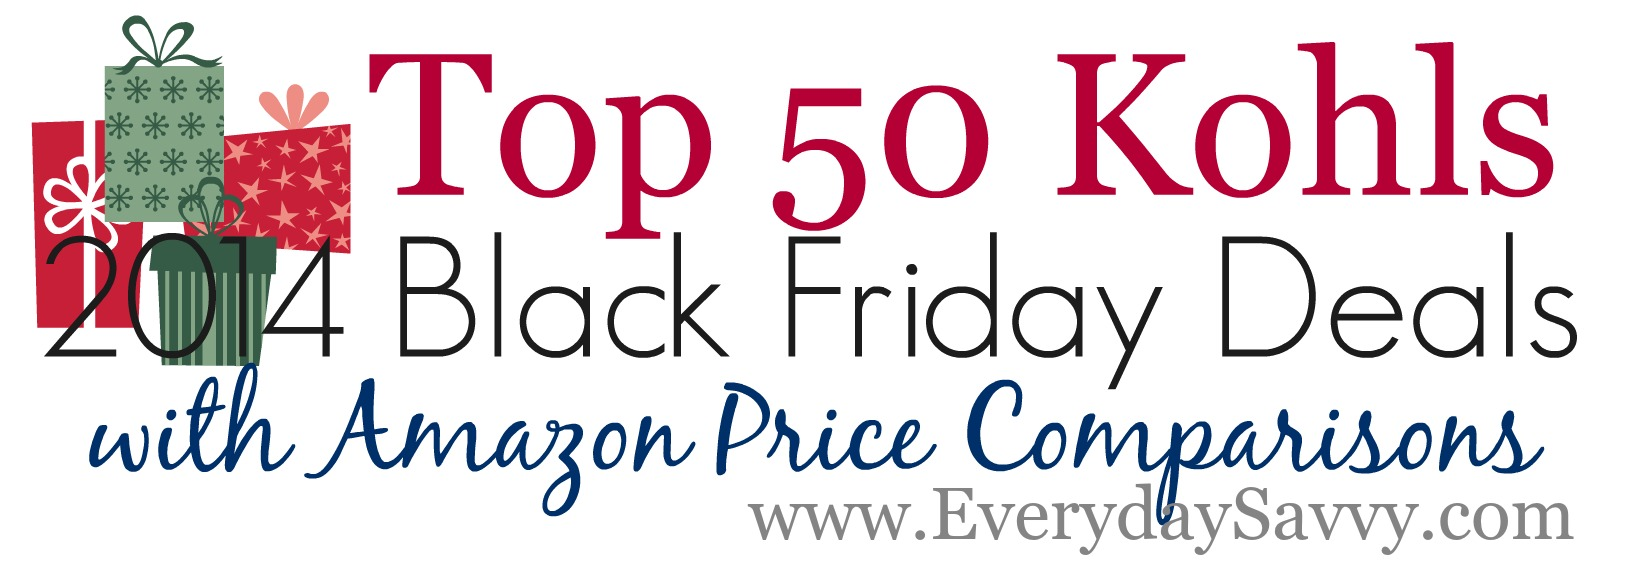 2014 Top 50 Kohls Black Friday Deals and Amazon Price Comparisons